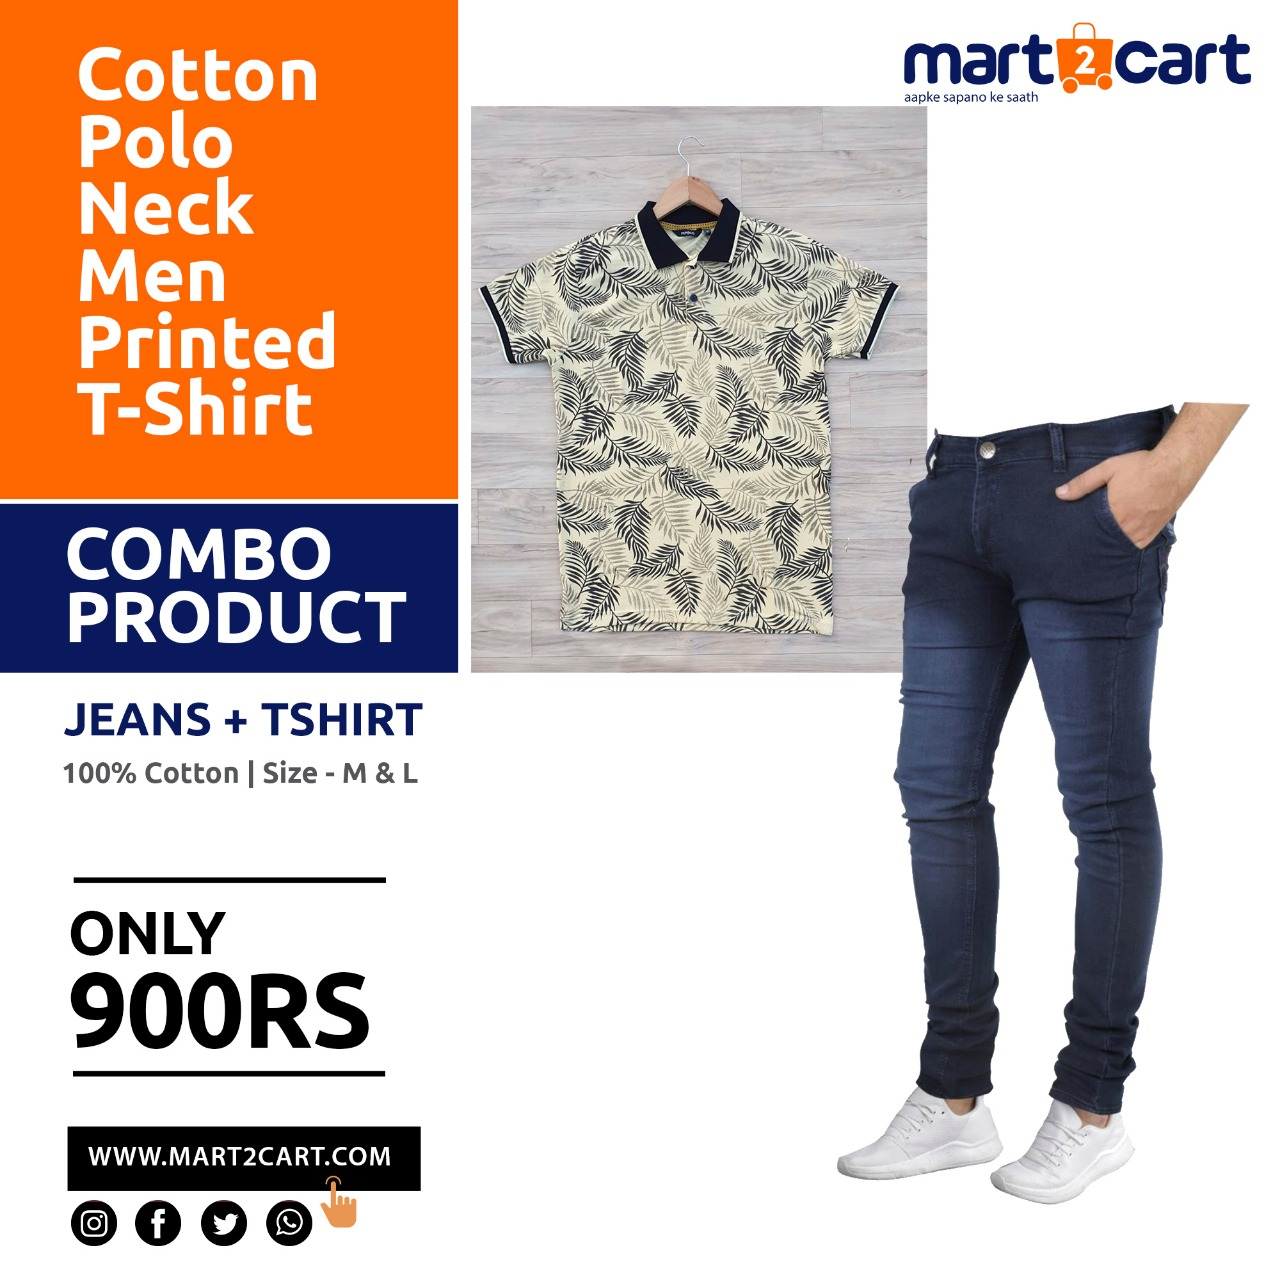 Men Printed T-Shirt and Jeans